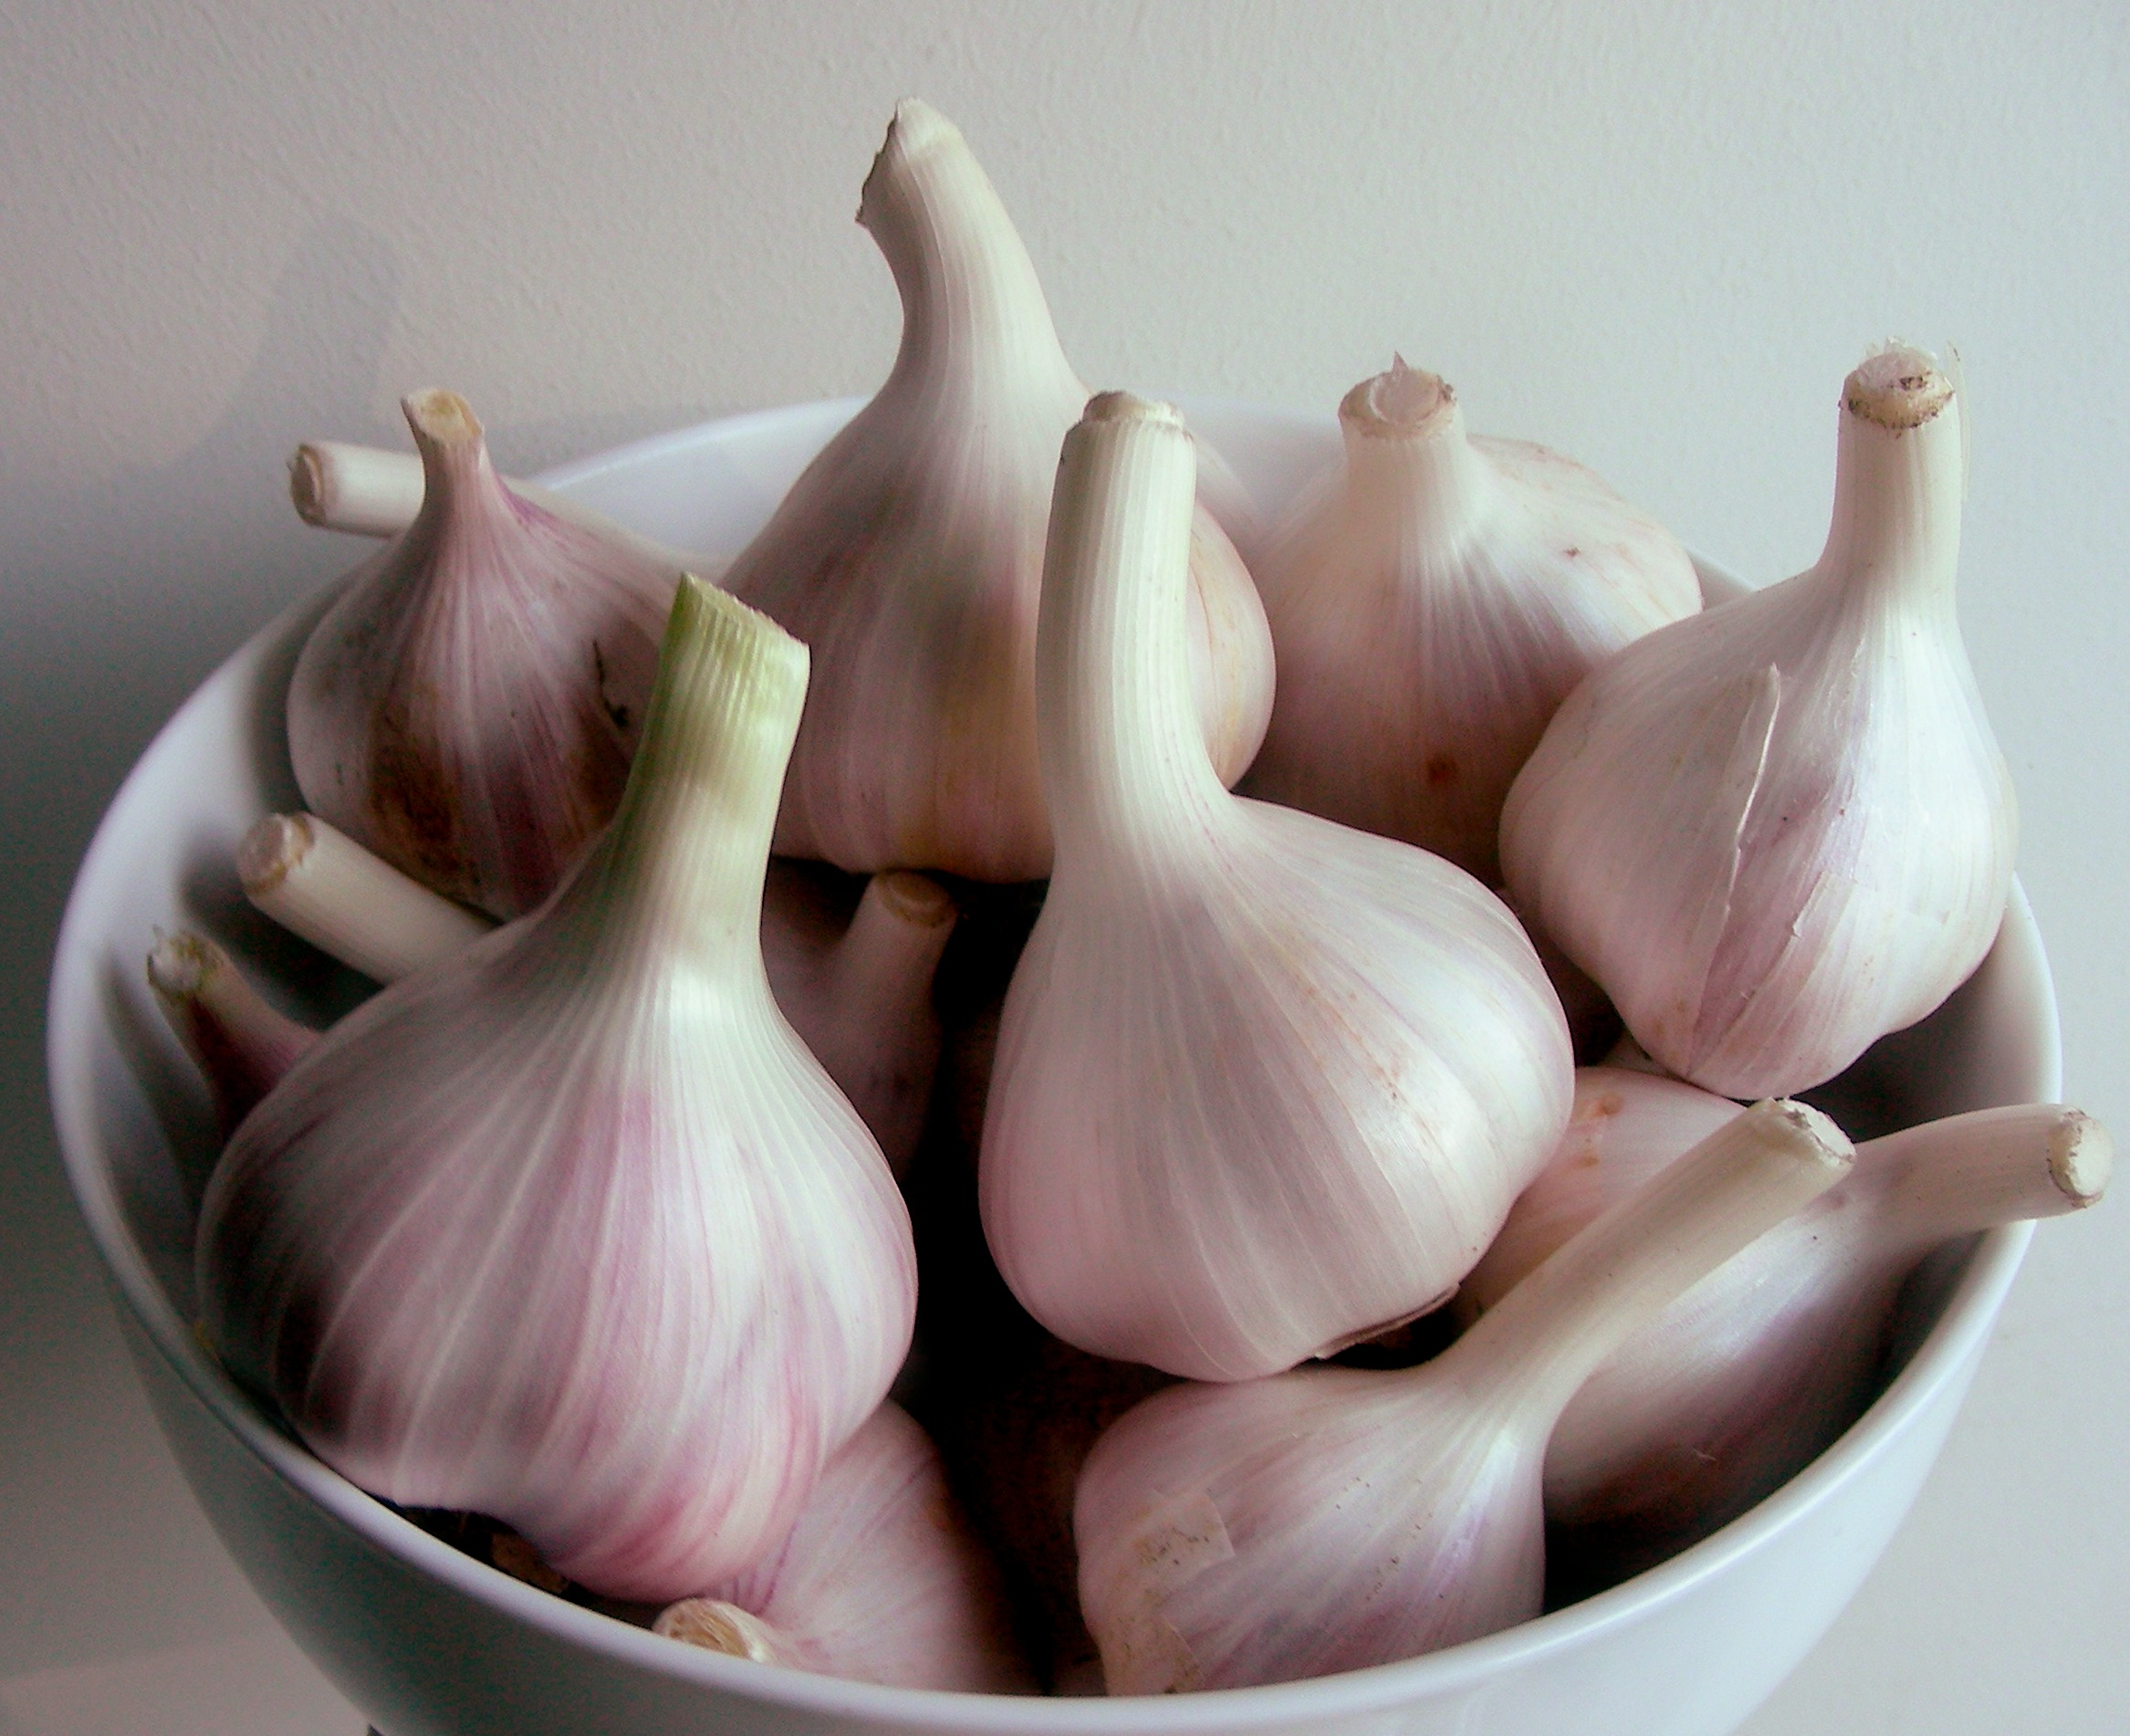 How to Cook Garlic Wit...